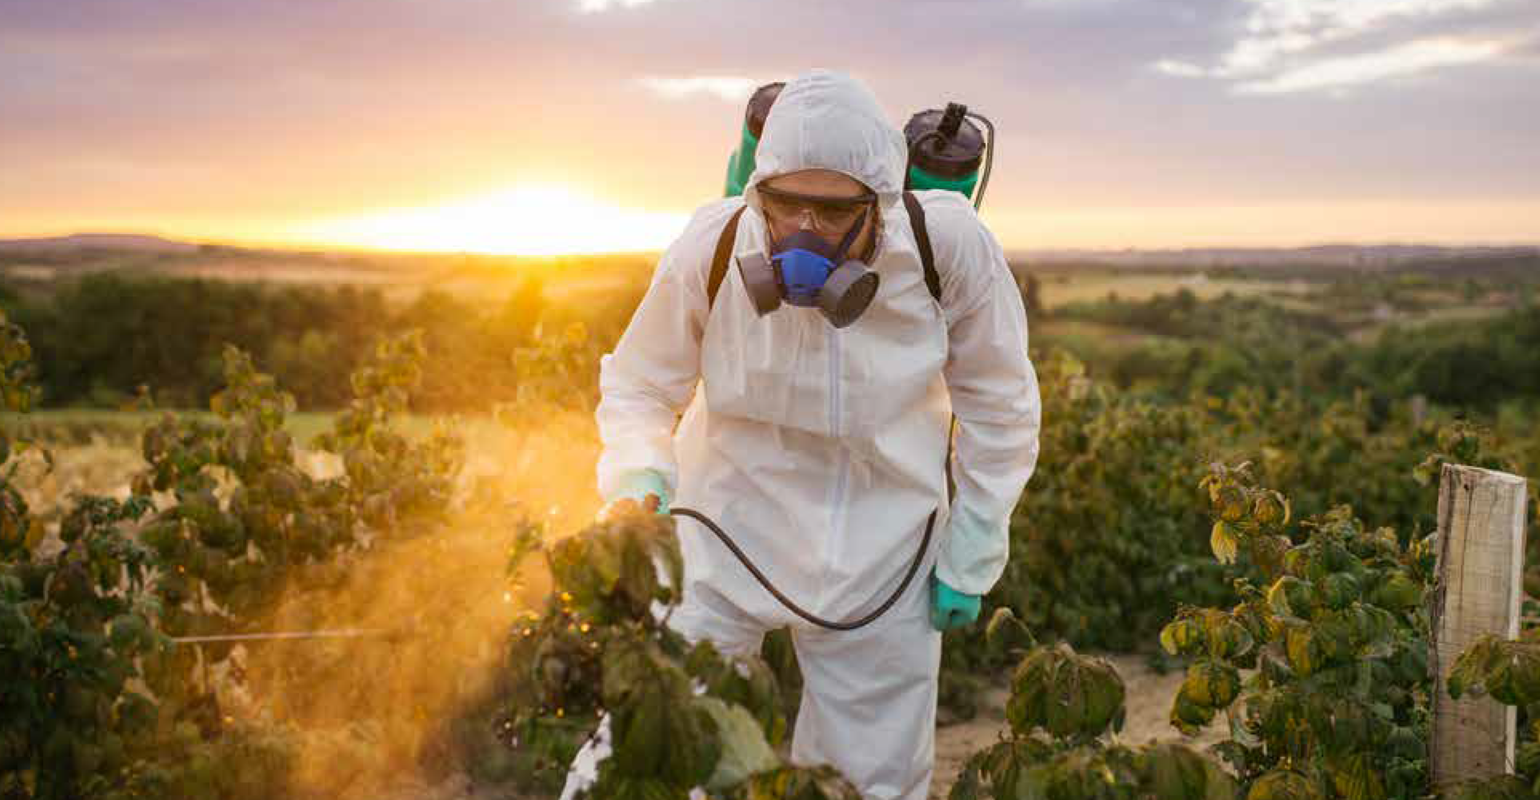 Farmworkers' health at greater risk from chemicals but organic practices can help, new Organic Center report shows